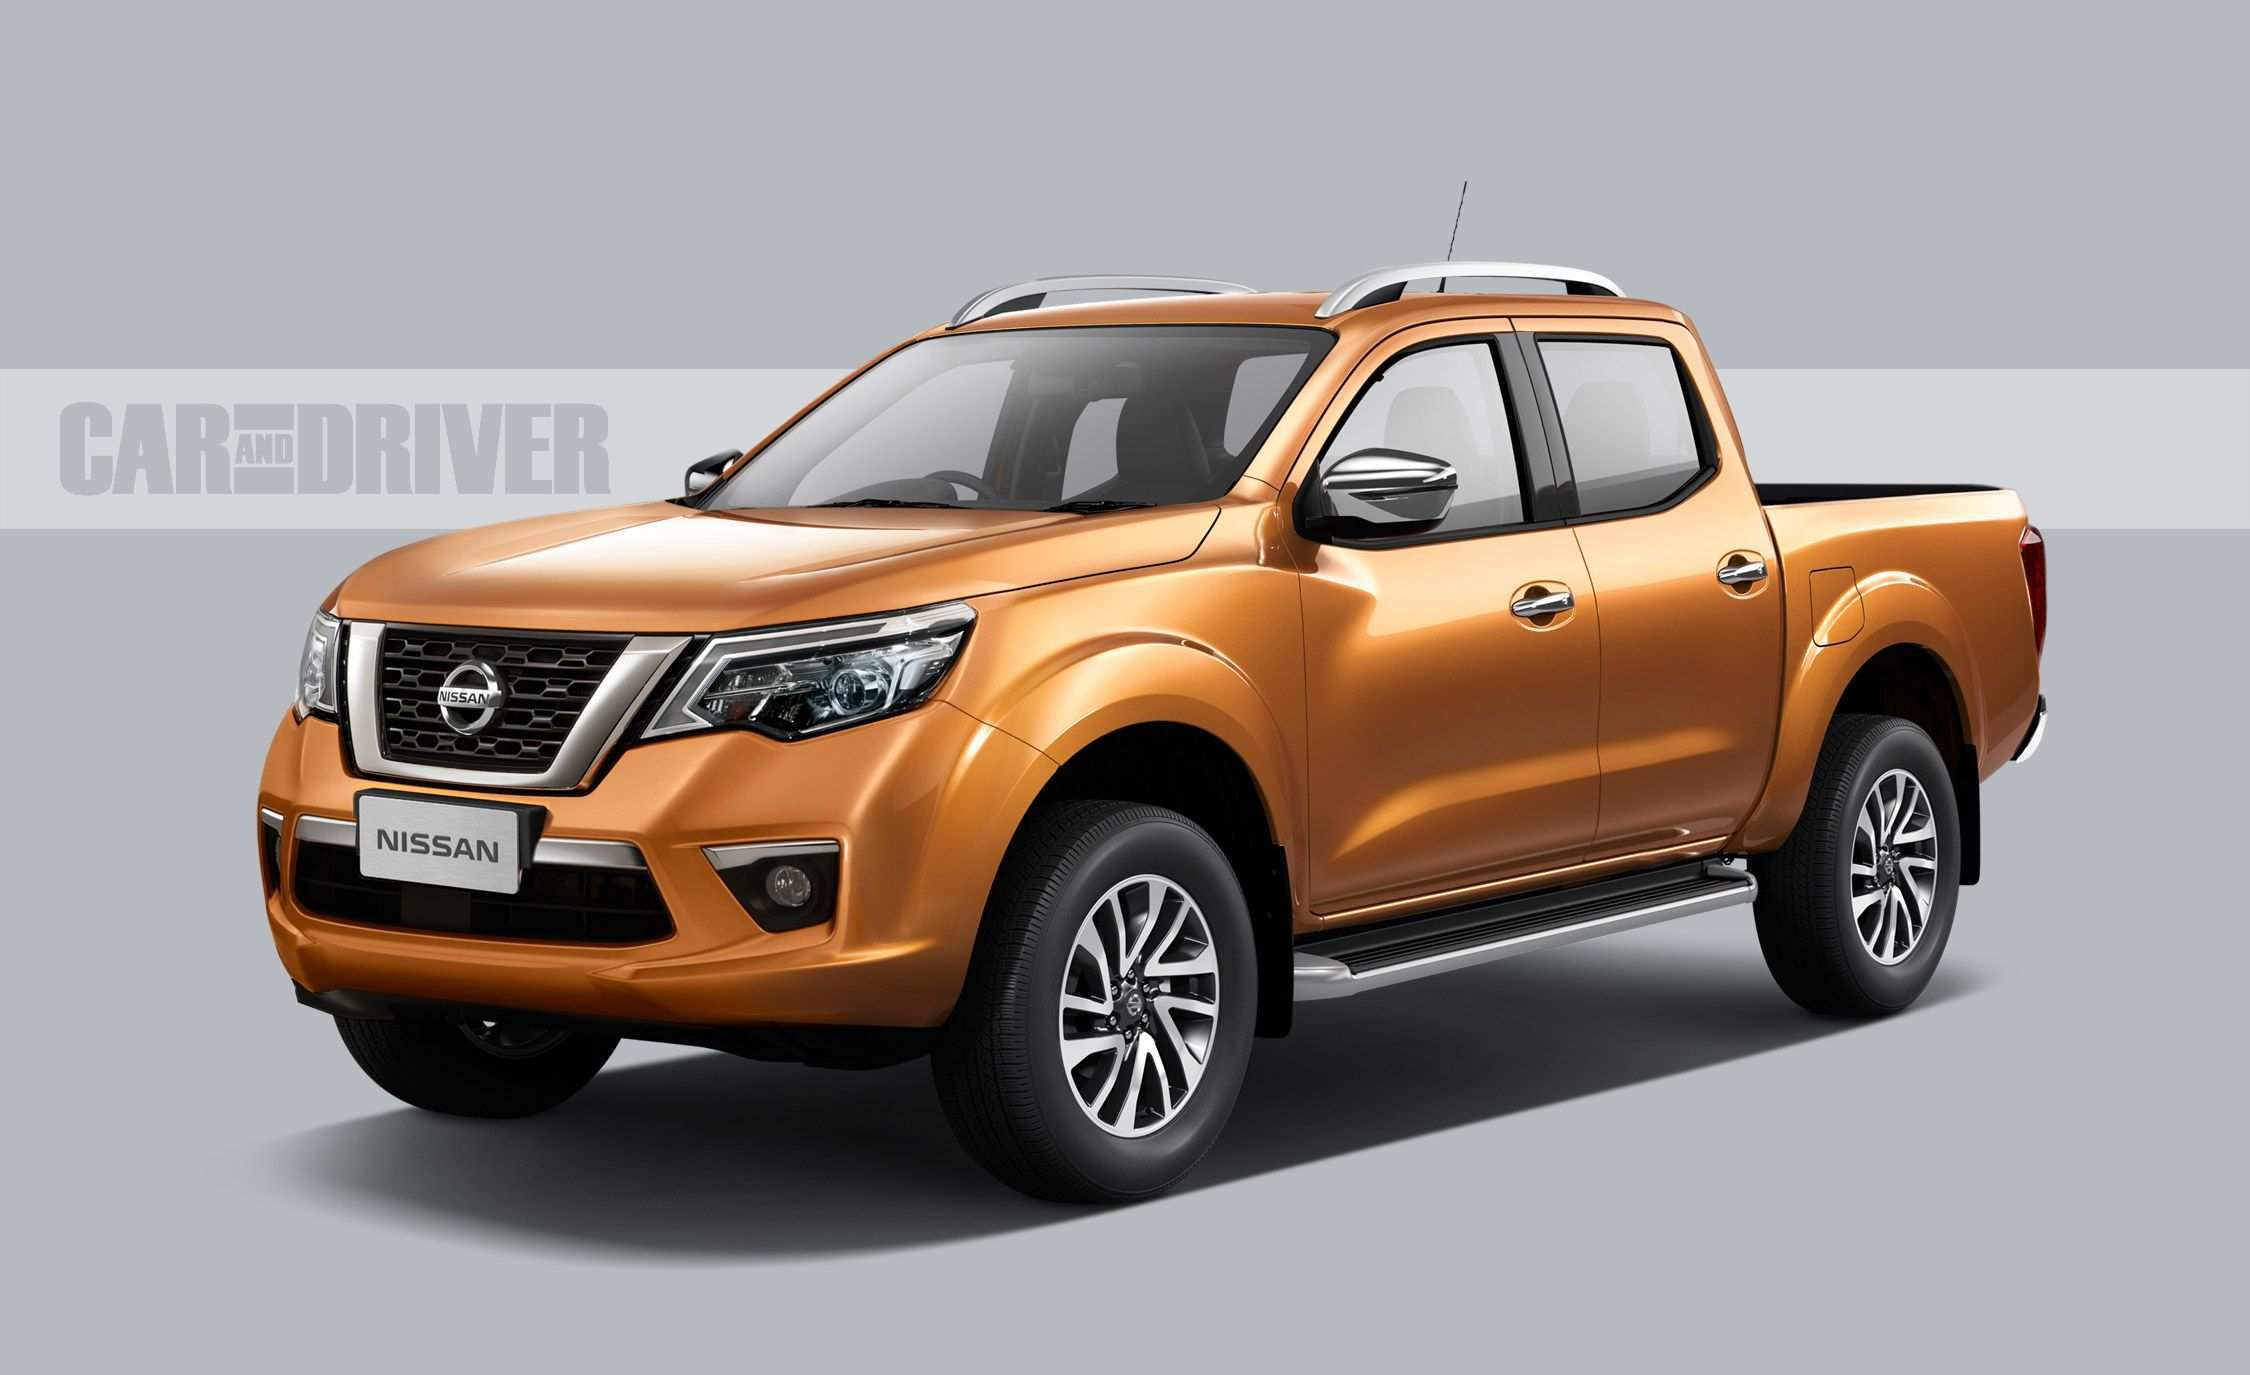 29 Gallery of Pickup Nissan 2020 Overview with Pickup Nissan 2020